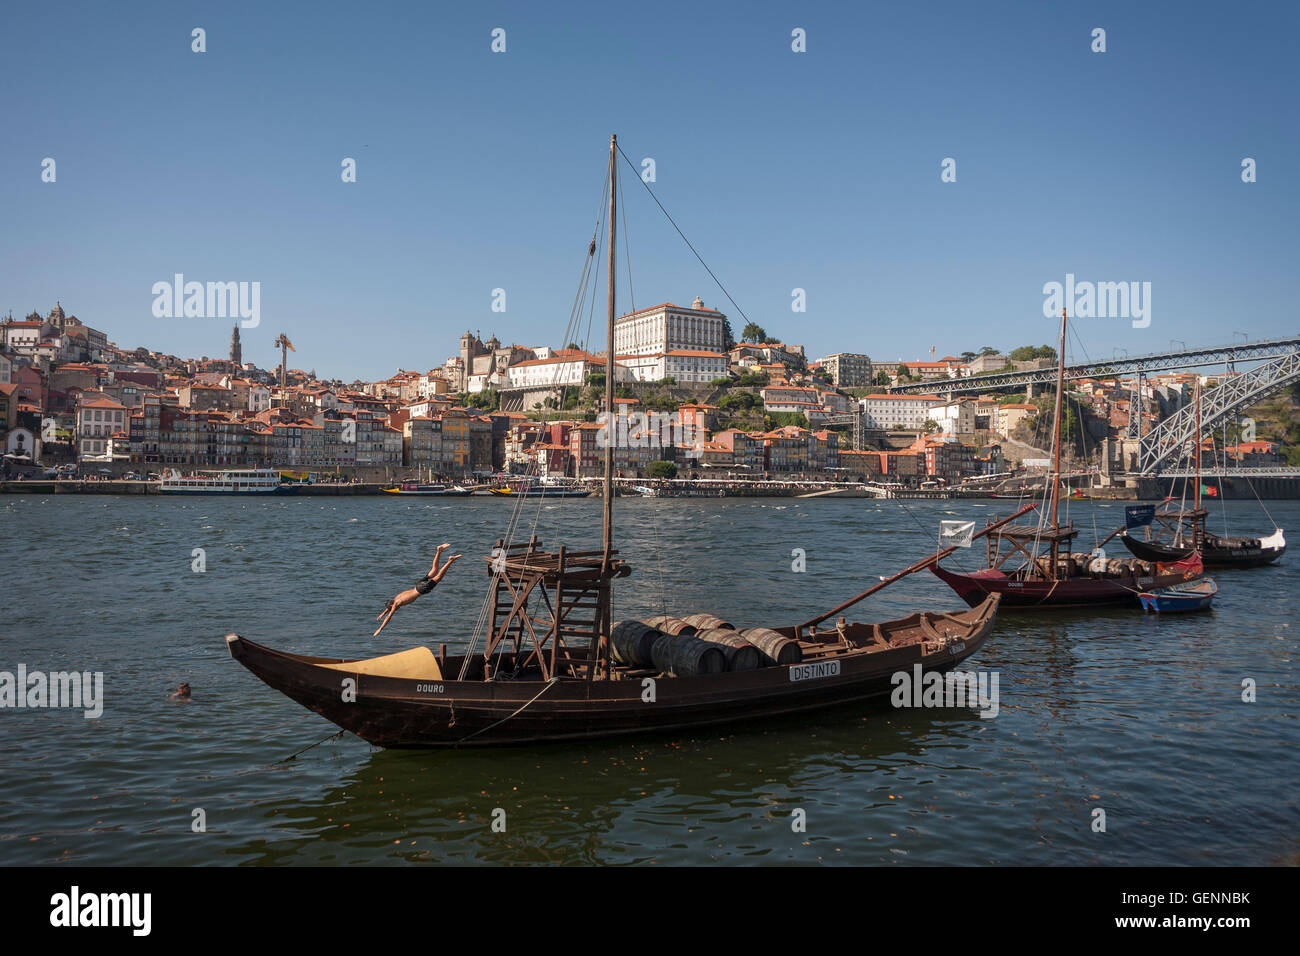 Local youth dives off a traditional Rabelo boat (Port wine transporter), into the River Douro in Porto, Portugal. Stock Photo